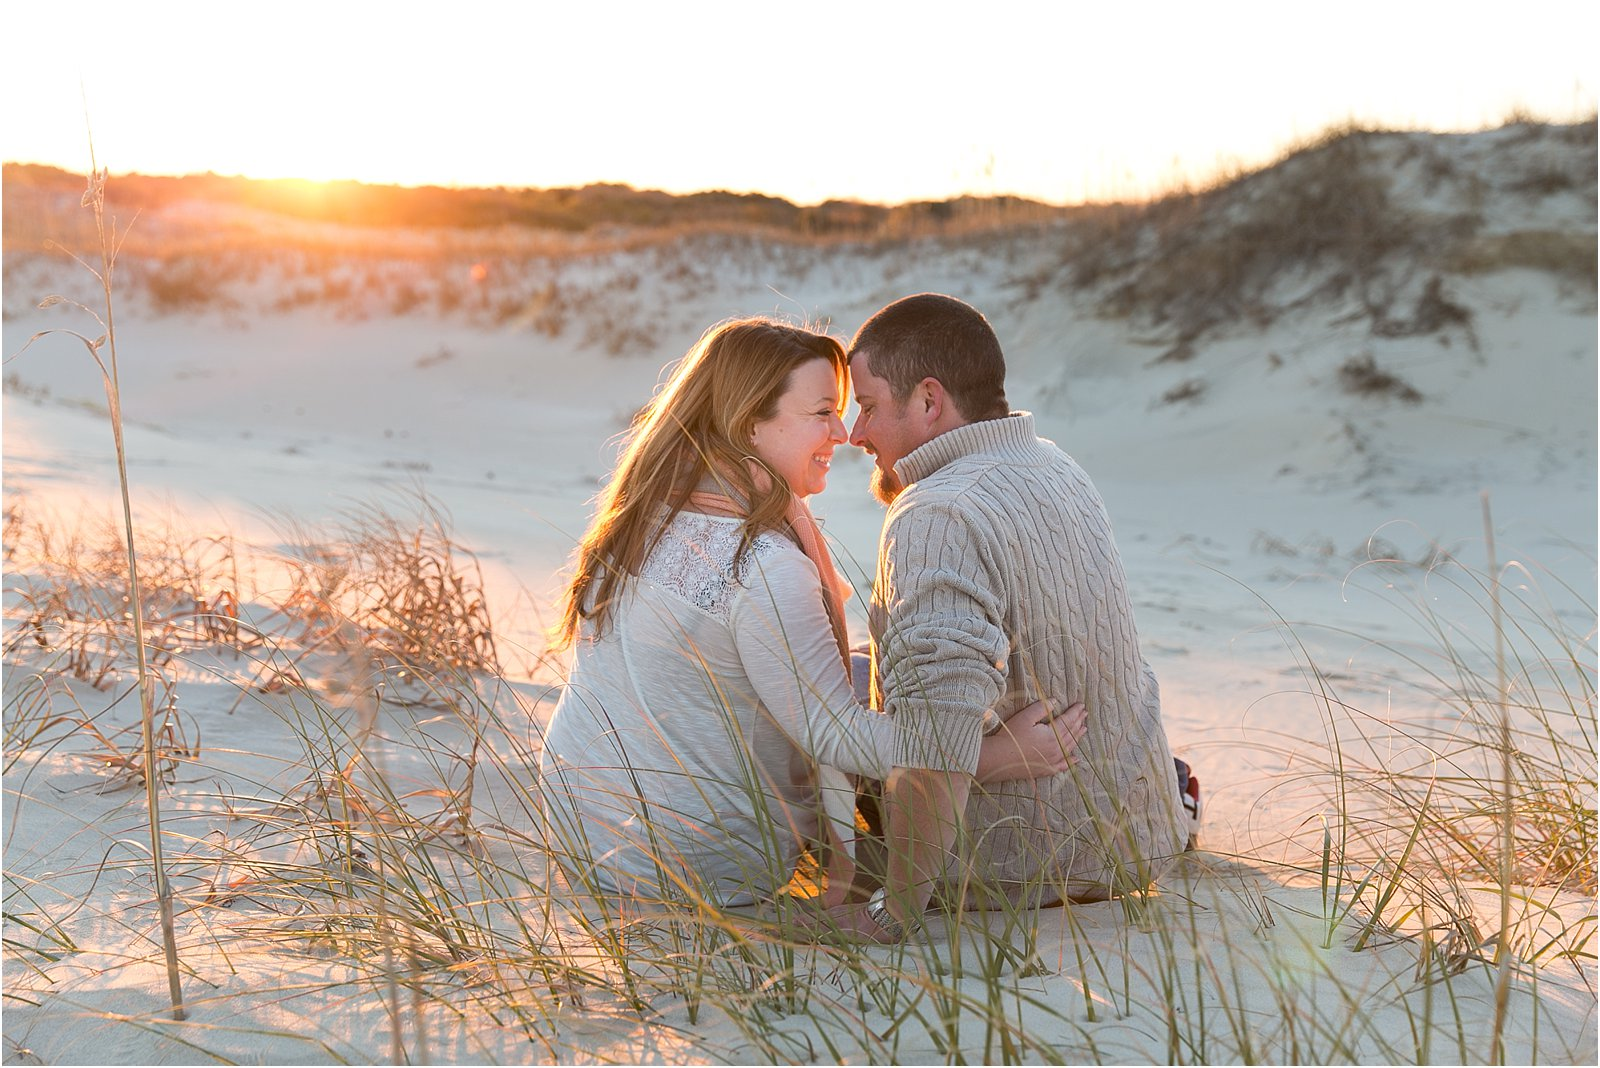 jessica_ryan_photography_pumpkin_patch_engagement_portraits_fall_october_engagements_virginia_beach_chesapeake_0331